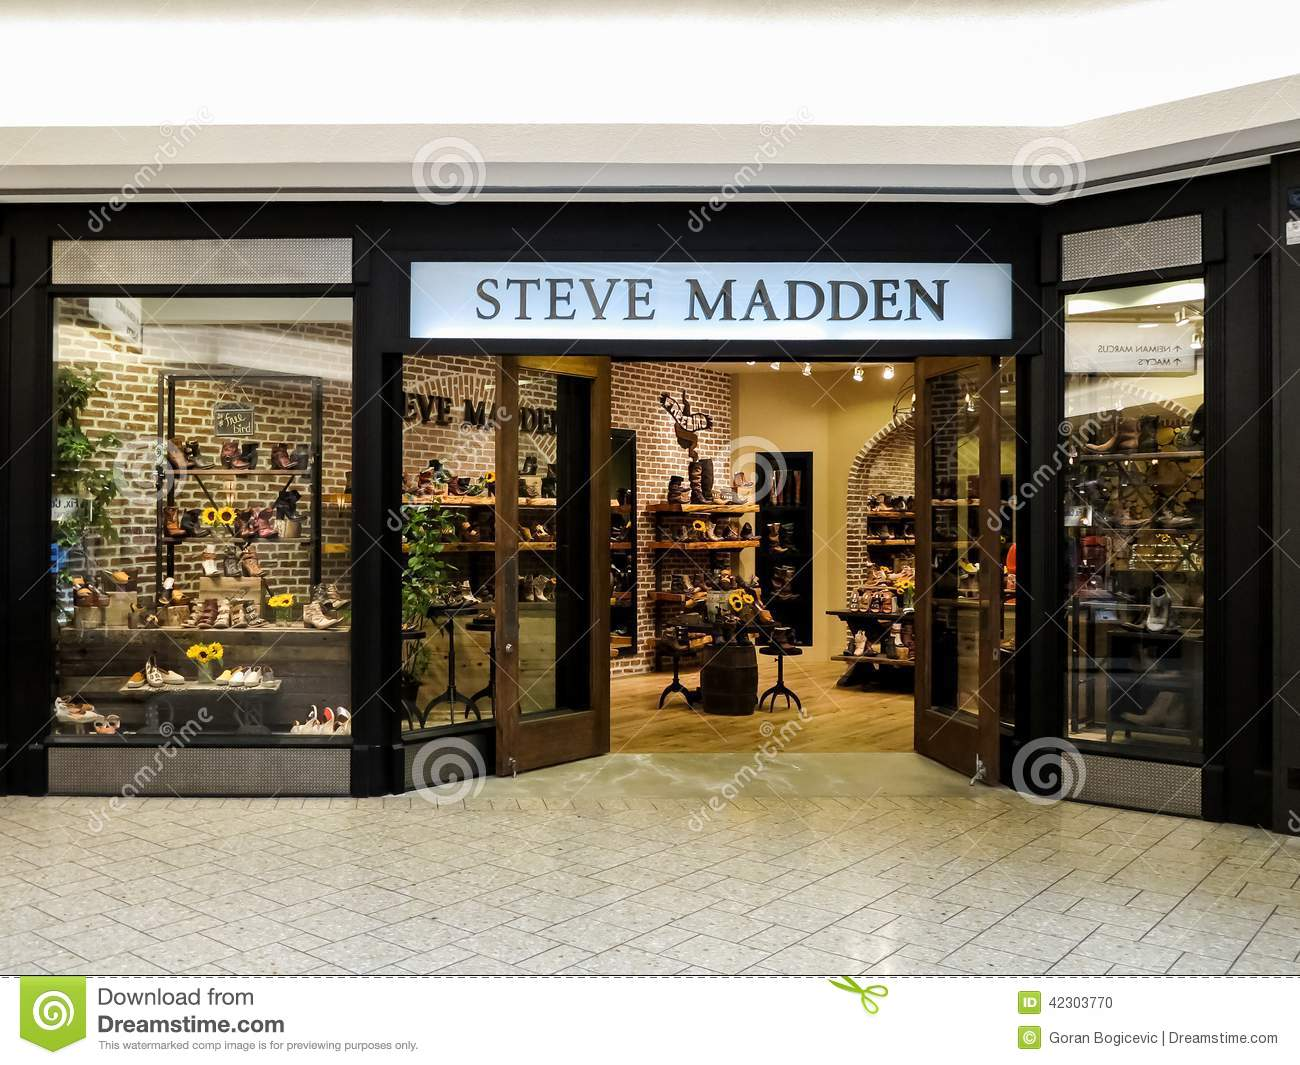 1ebbb802332 View at Steve Madden shop in Denver. It is a footwear company founded at  1990.